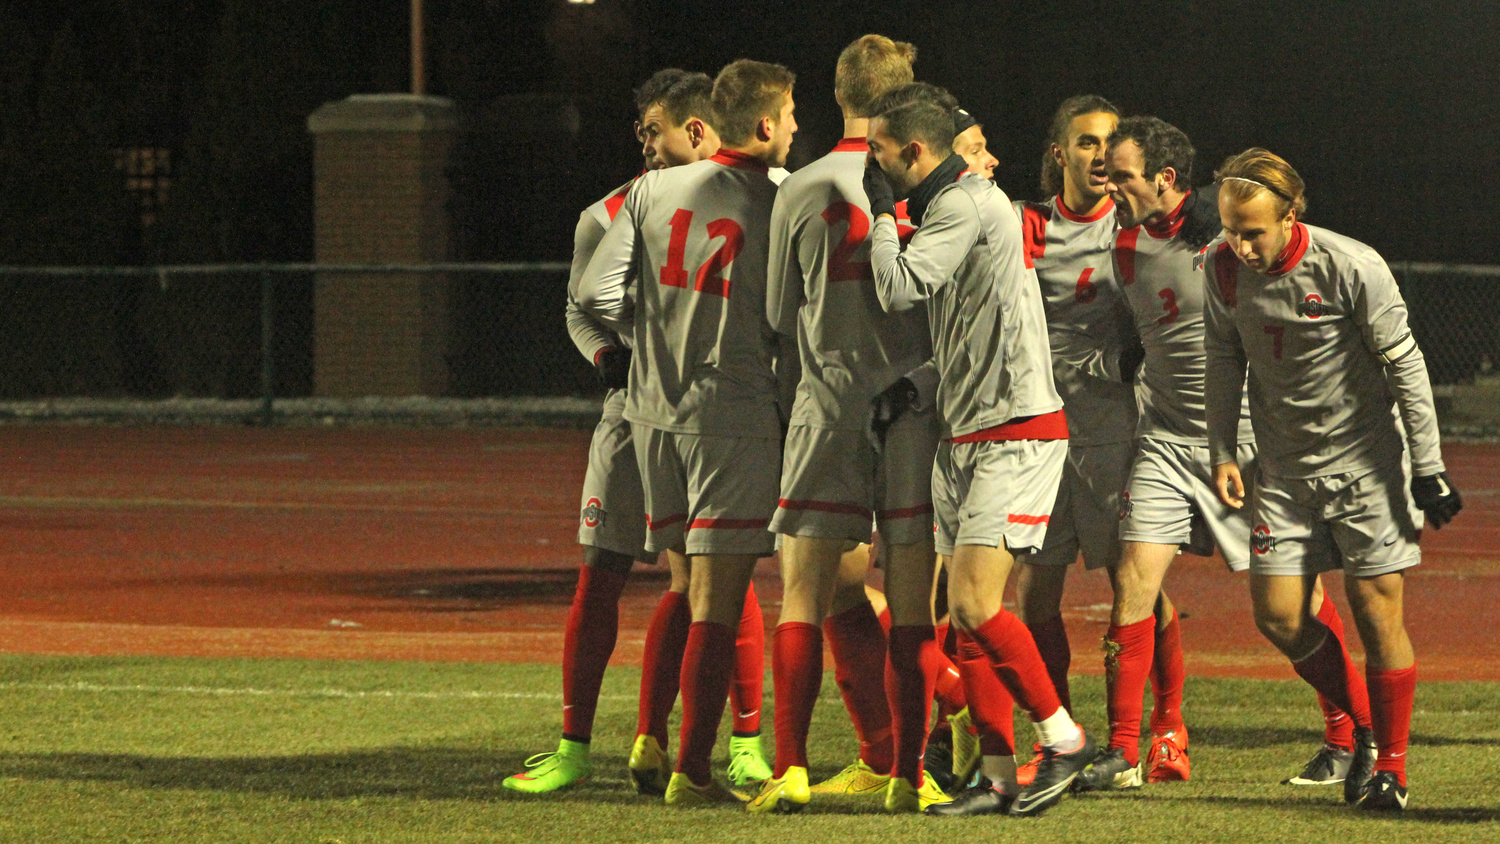 Members of the OSU men's soccer team celebrate a goal from junior defender Kyle Culbertson (3) during a match against Akron on Nov. 20 at Jesse Owens Memorial Stadium. OSU advanced on penalty kicks, 1-1 (13-12).  Credit: Emily Yarcusko / For The Lantern